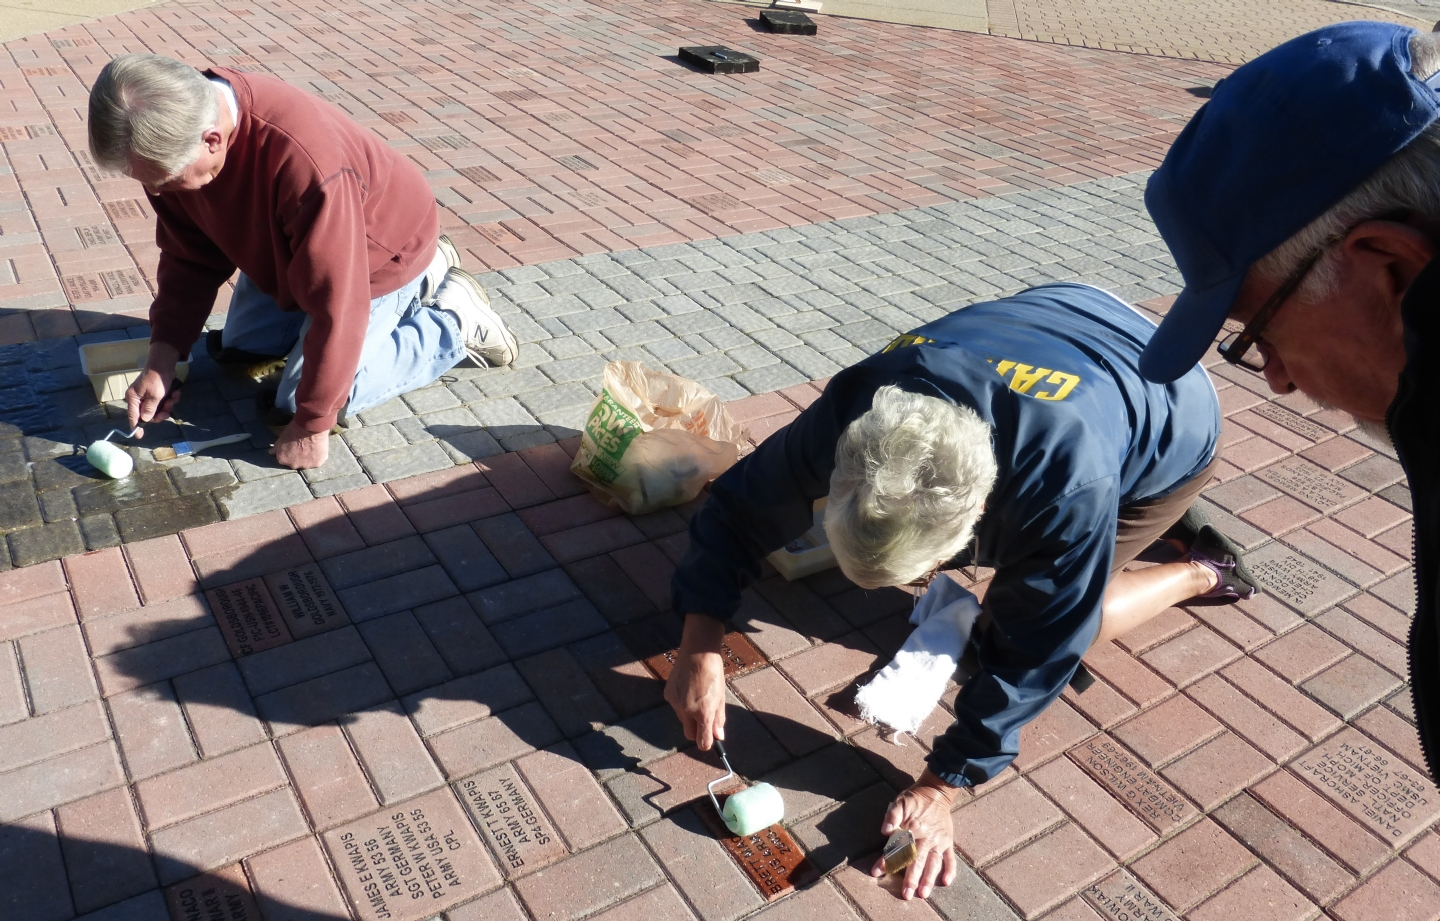 Fund raising pavers are sealed annually to preserve them.